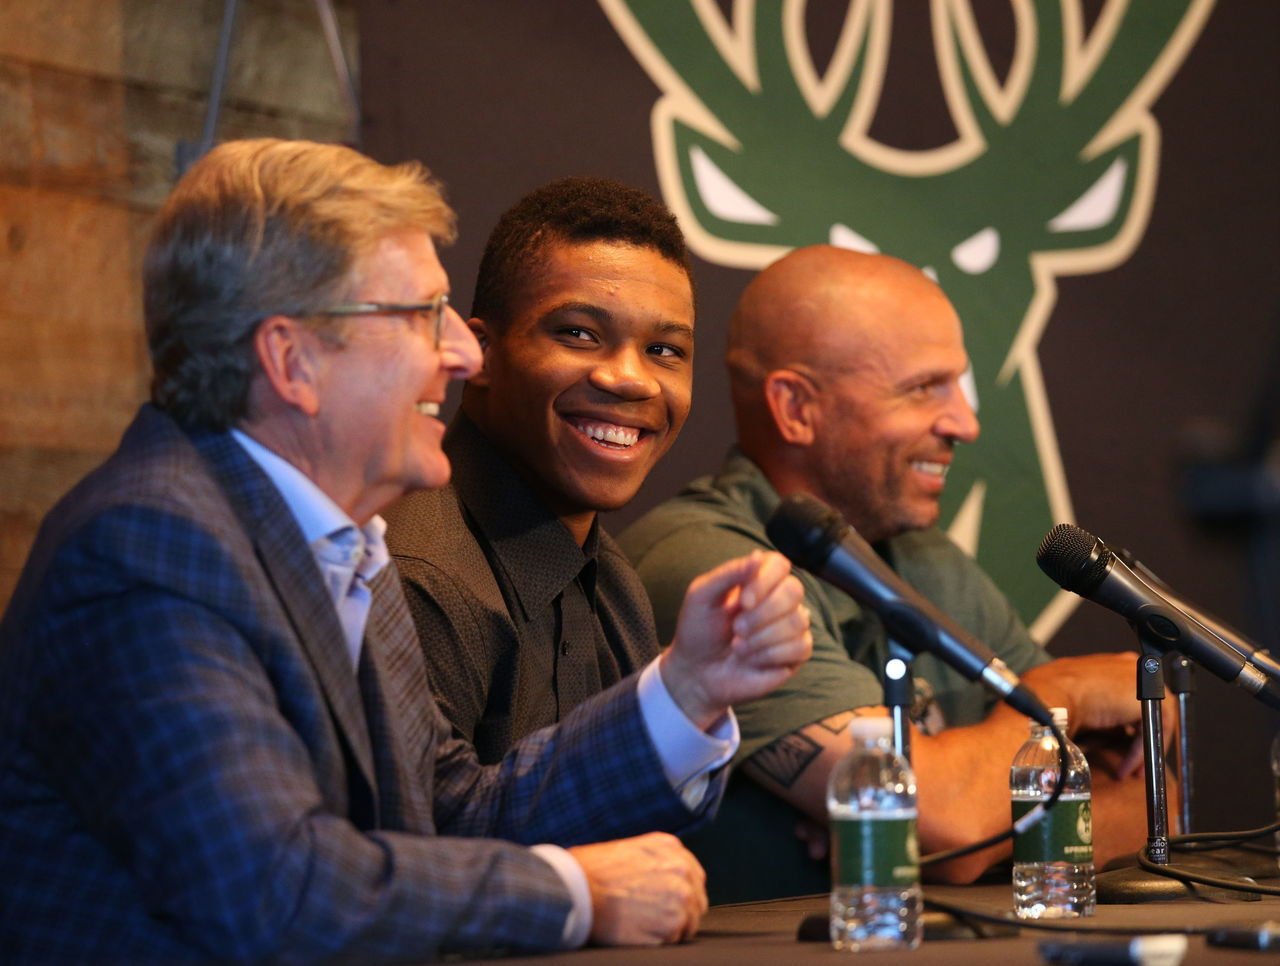 Antetokounmpo thanks ex-Bucks GM Hammond: 'This guy took a chance on me'